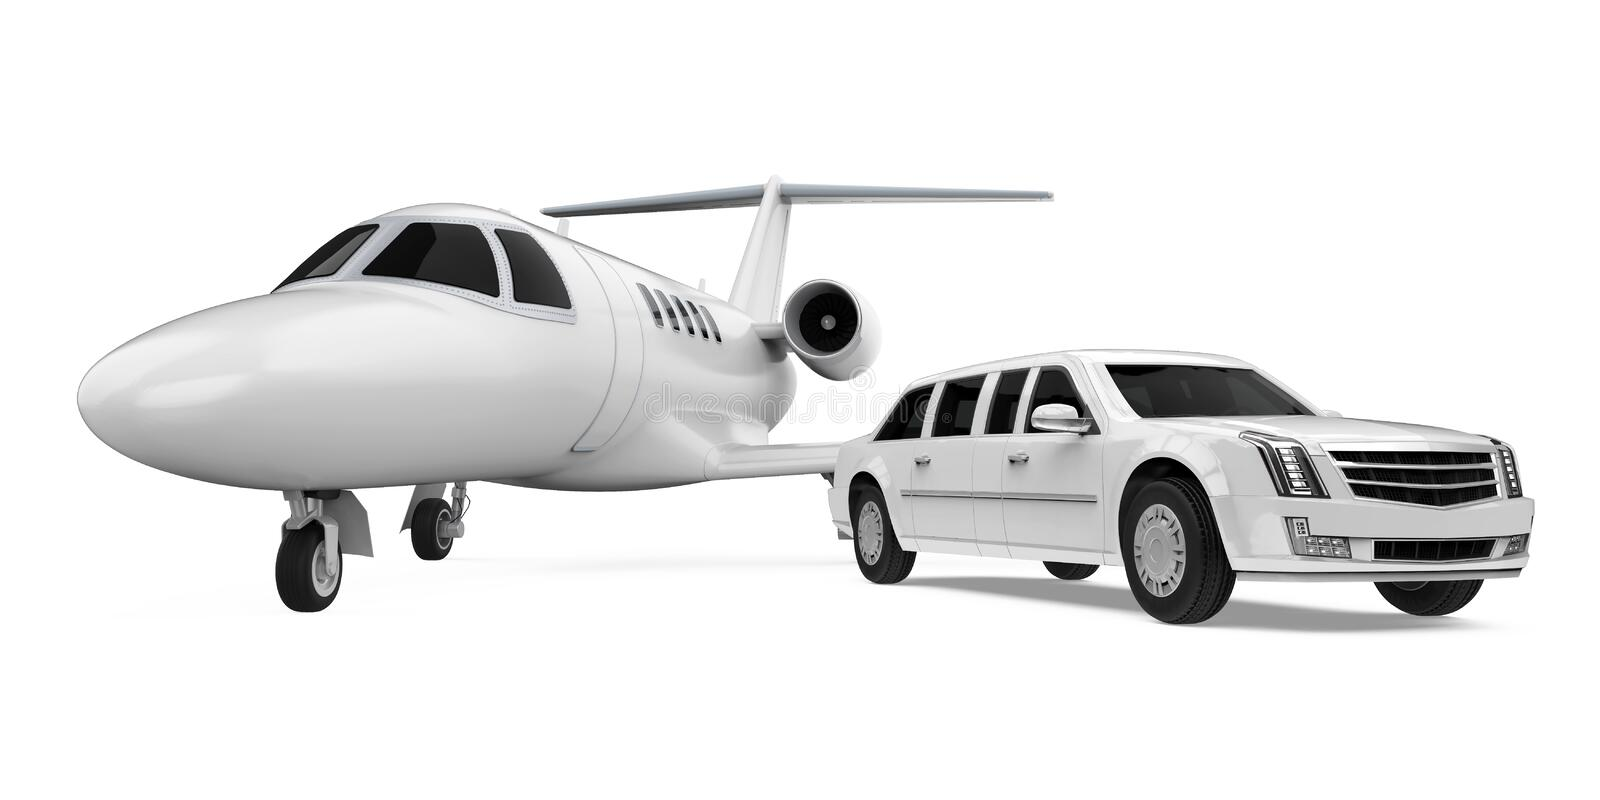 Luxury Limousine Car and Private Jet Isolated stock illustration